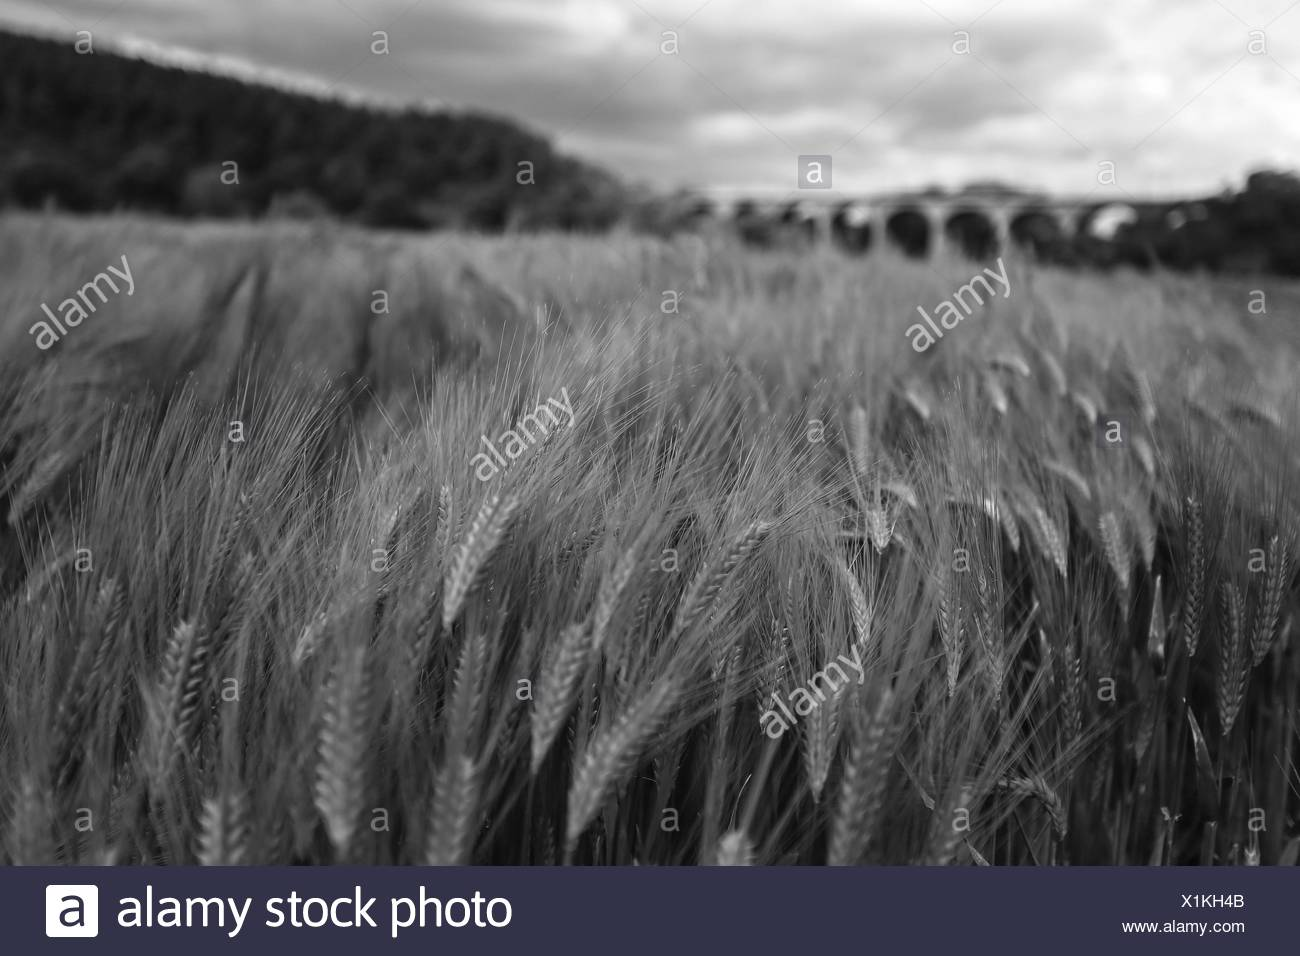 Scenic View Of Wheat Field Against Sky - Stock Image